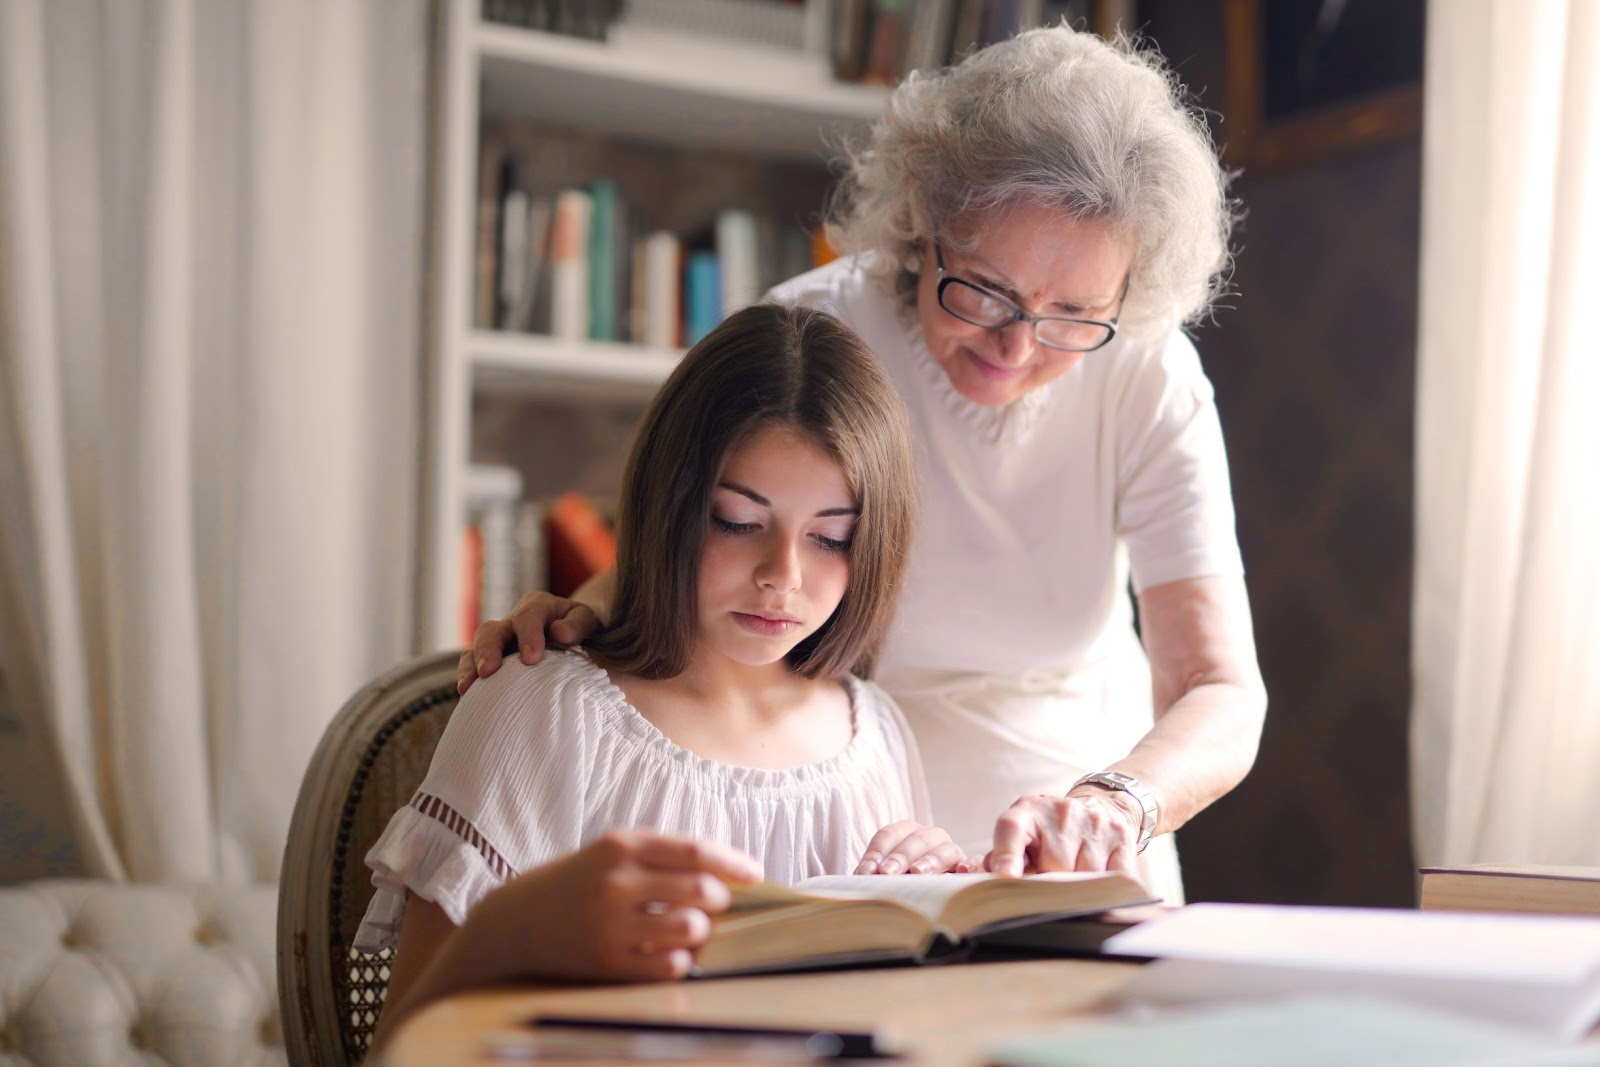 Young girl reading book with senior woman helping her